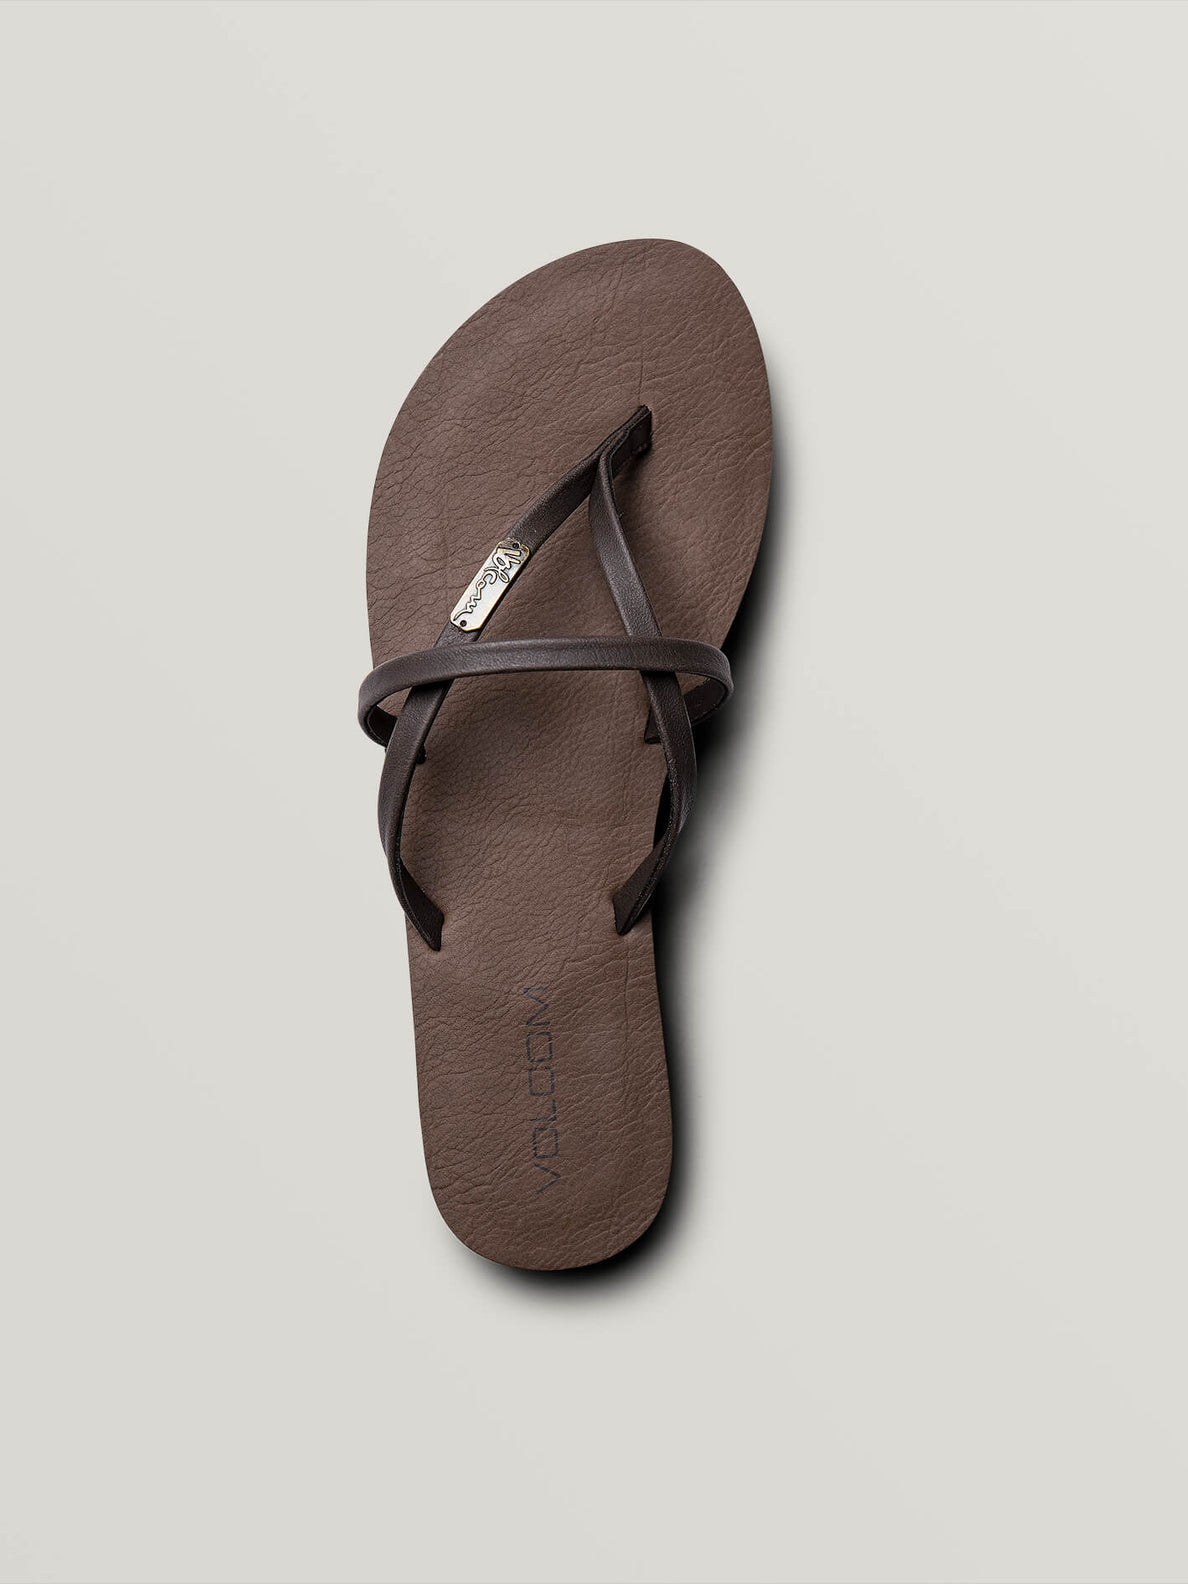 All Night Long Sandals In Brown, Alternate View